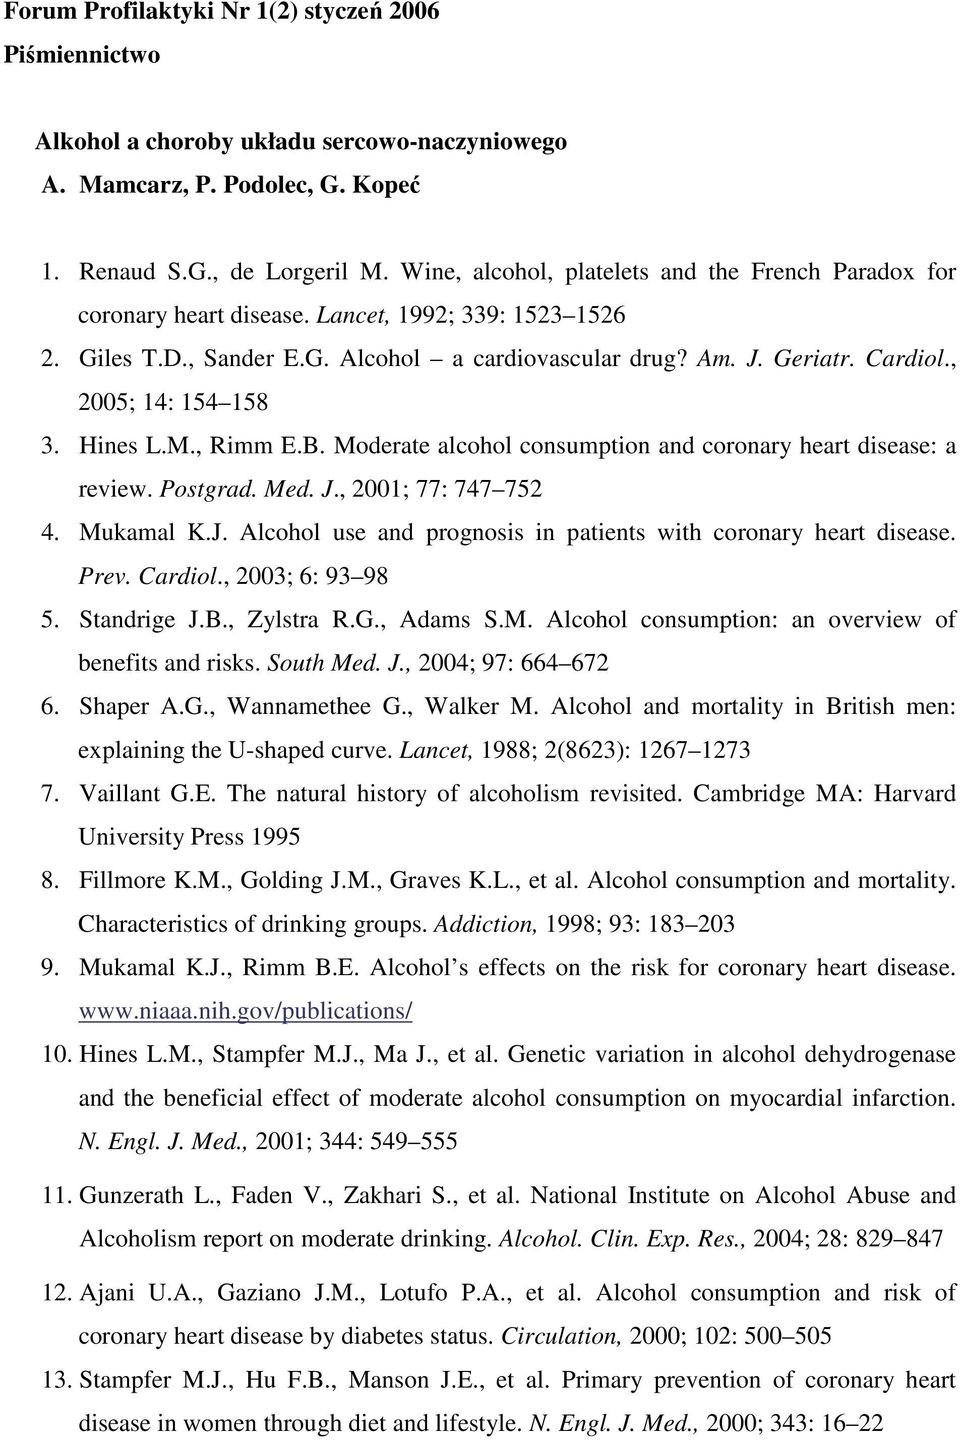 , 2005; 14: 154 158 3. Hines L.M., Rimm E.B. Moderate alcohol consumption and coronary heart disease: a review. Postgrad. Med. J., 2001; 77: 747 752 4. Mukamal K.J. Alcohol use and prognosis in patients with coronary heart disease.